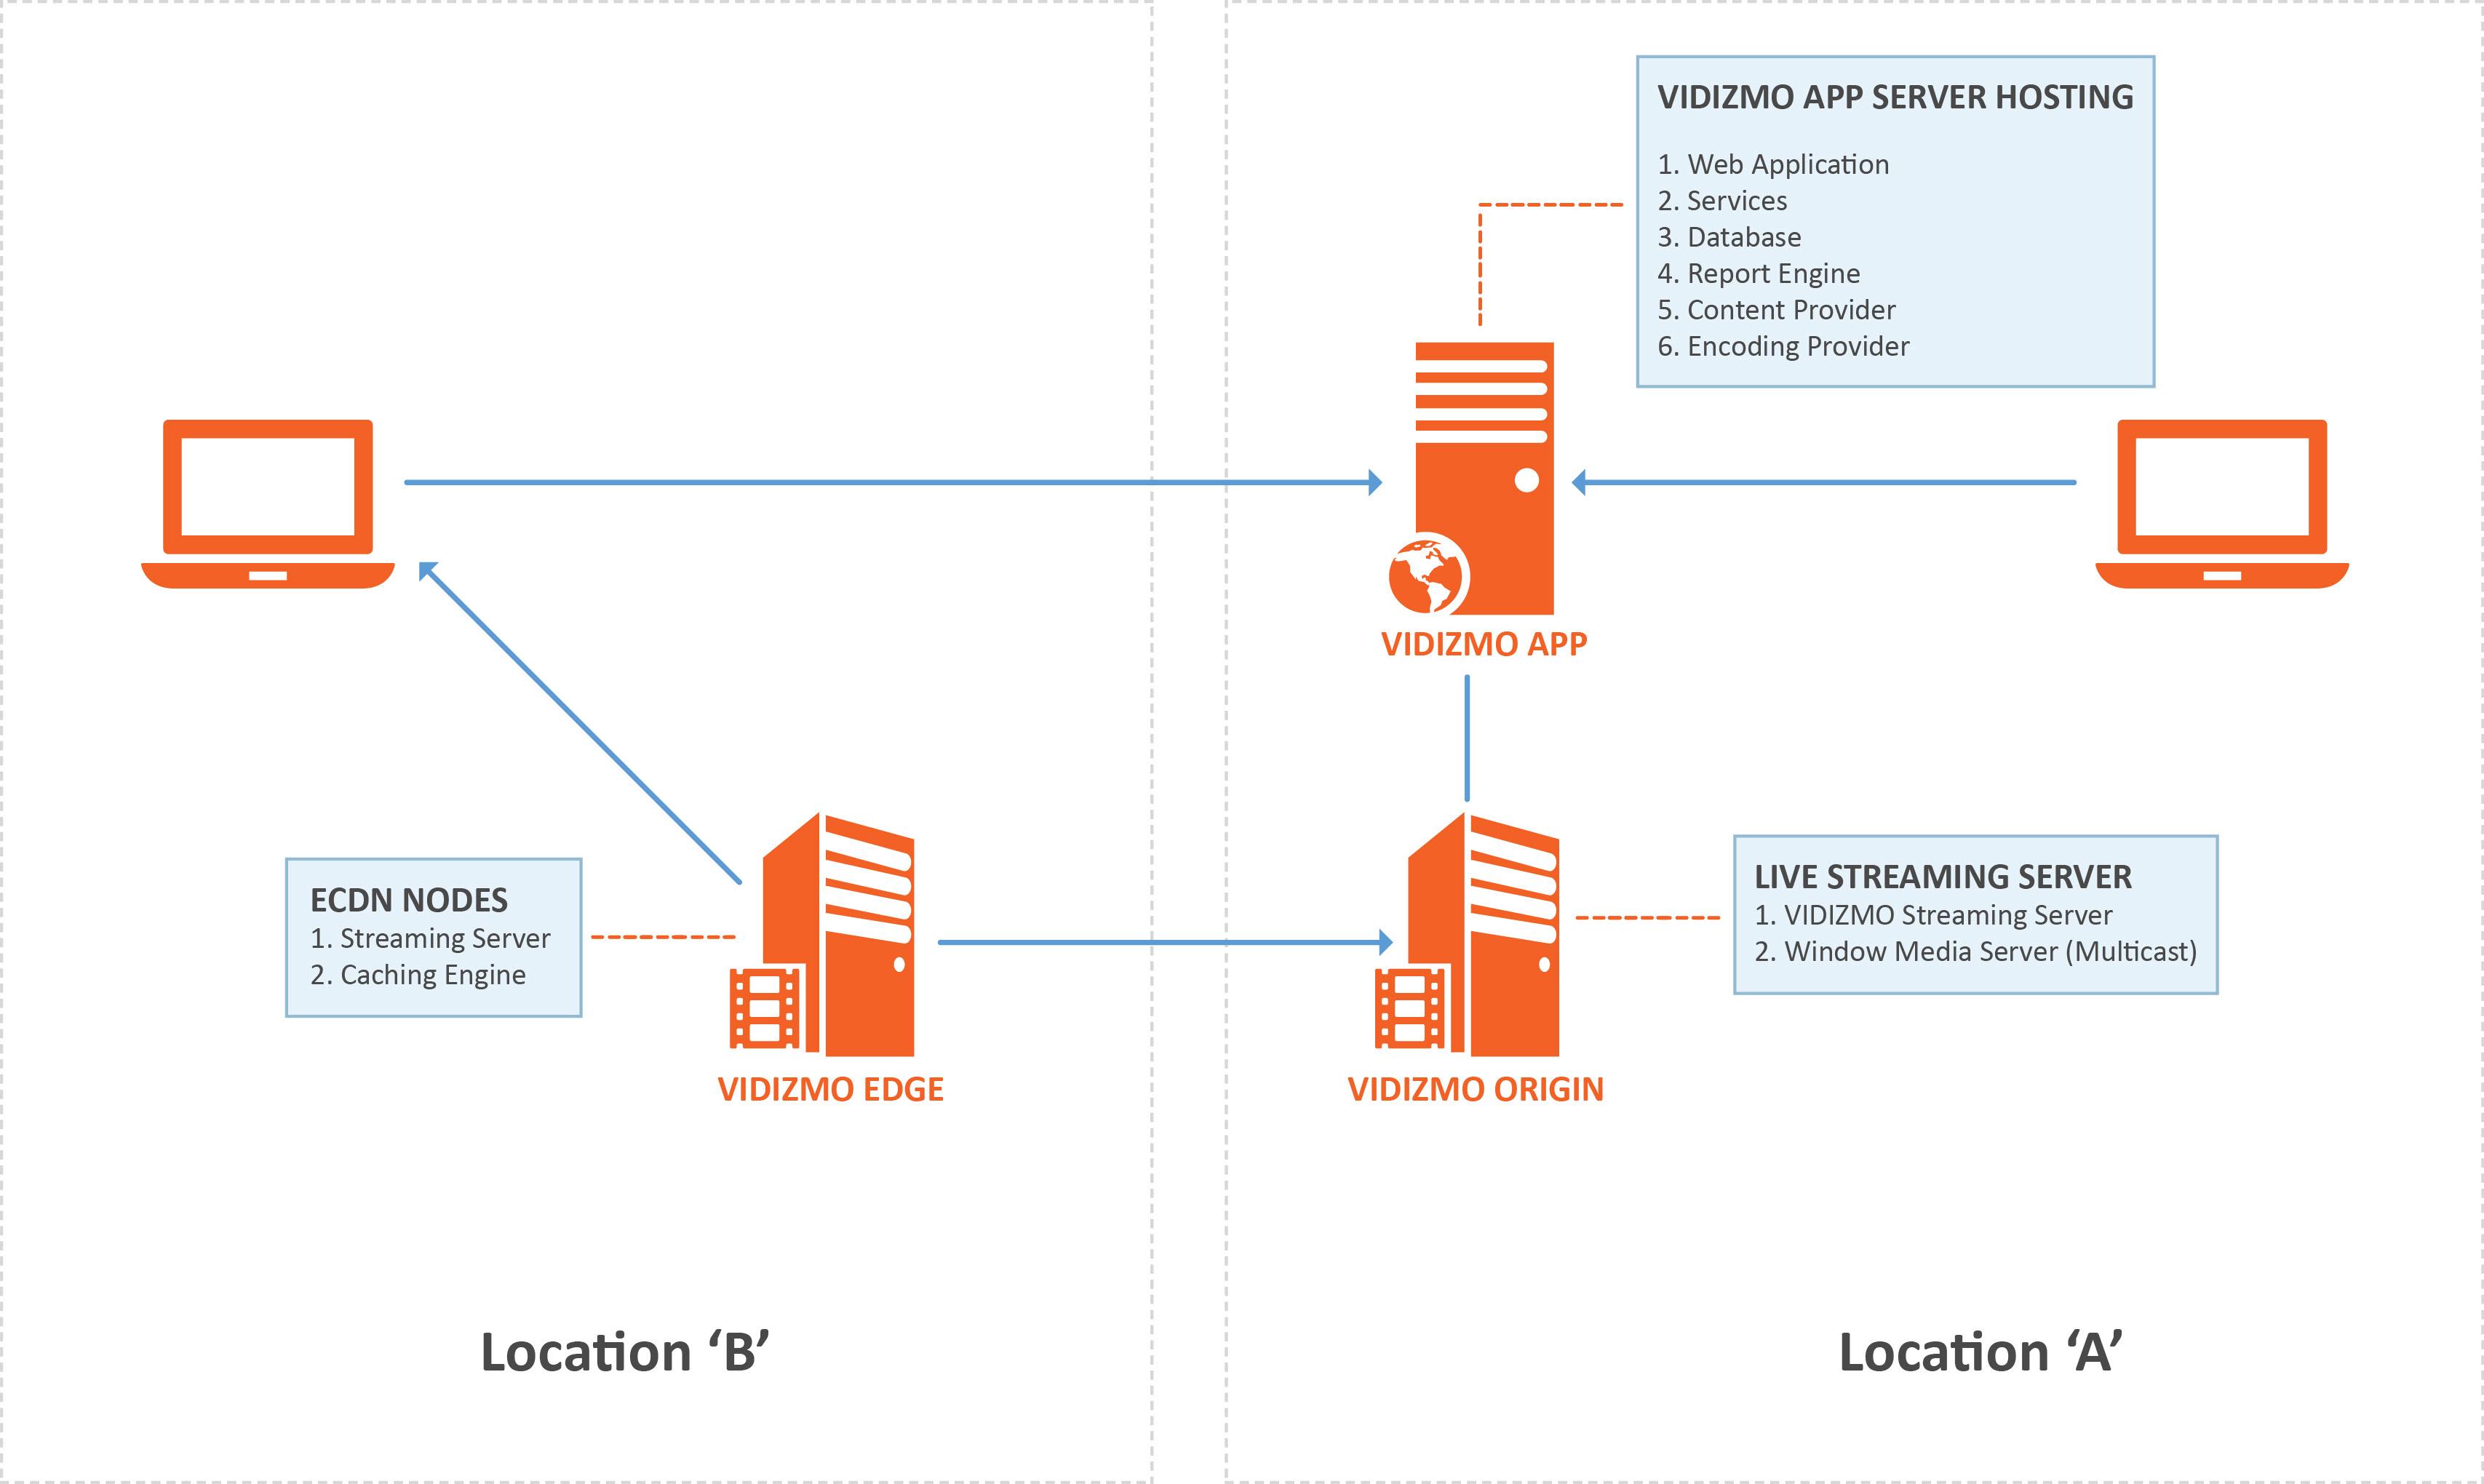 small resolution of there are a total of 3 vms that make up the entire environment these vms have a different set of components installed to perform different roles